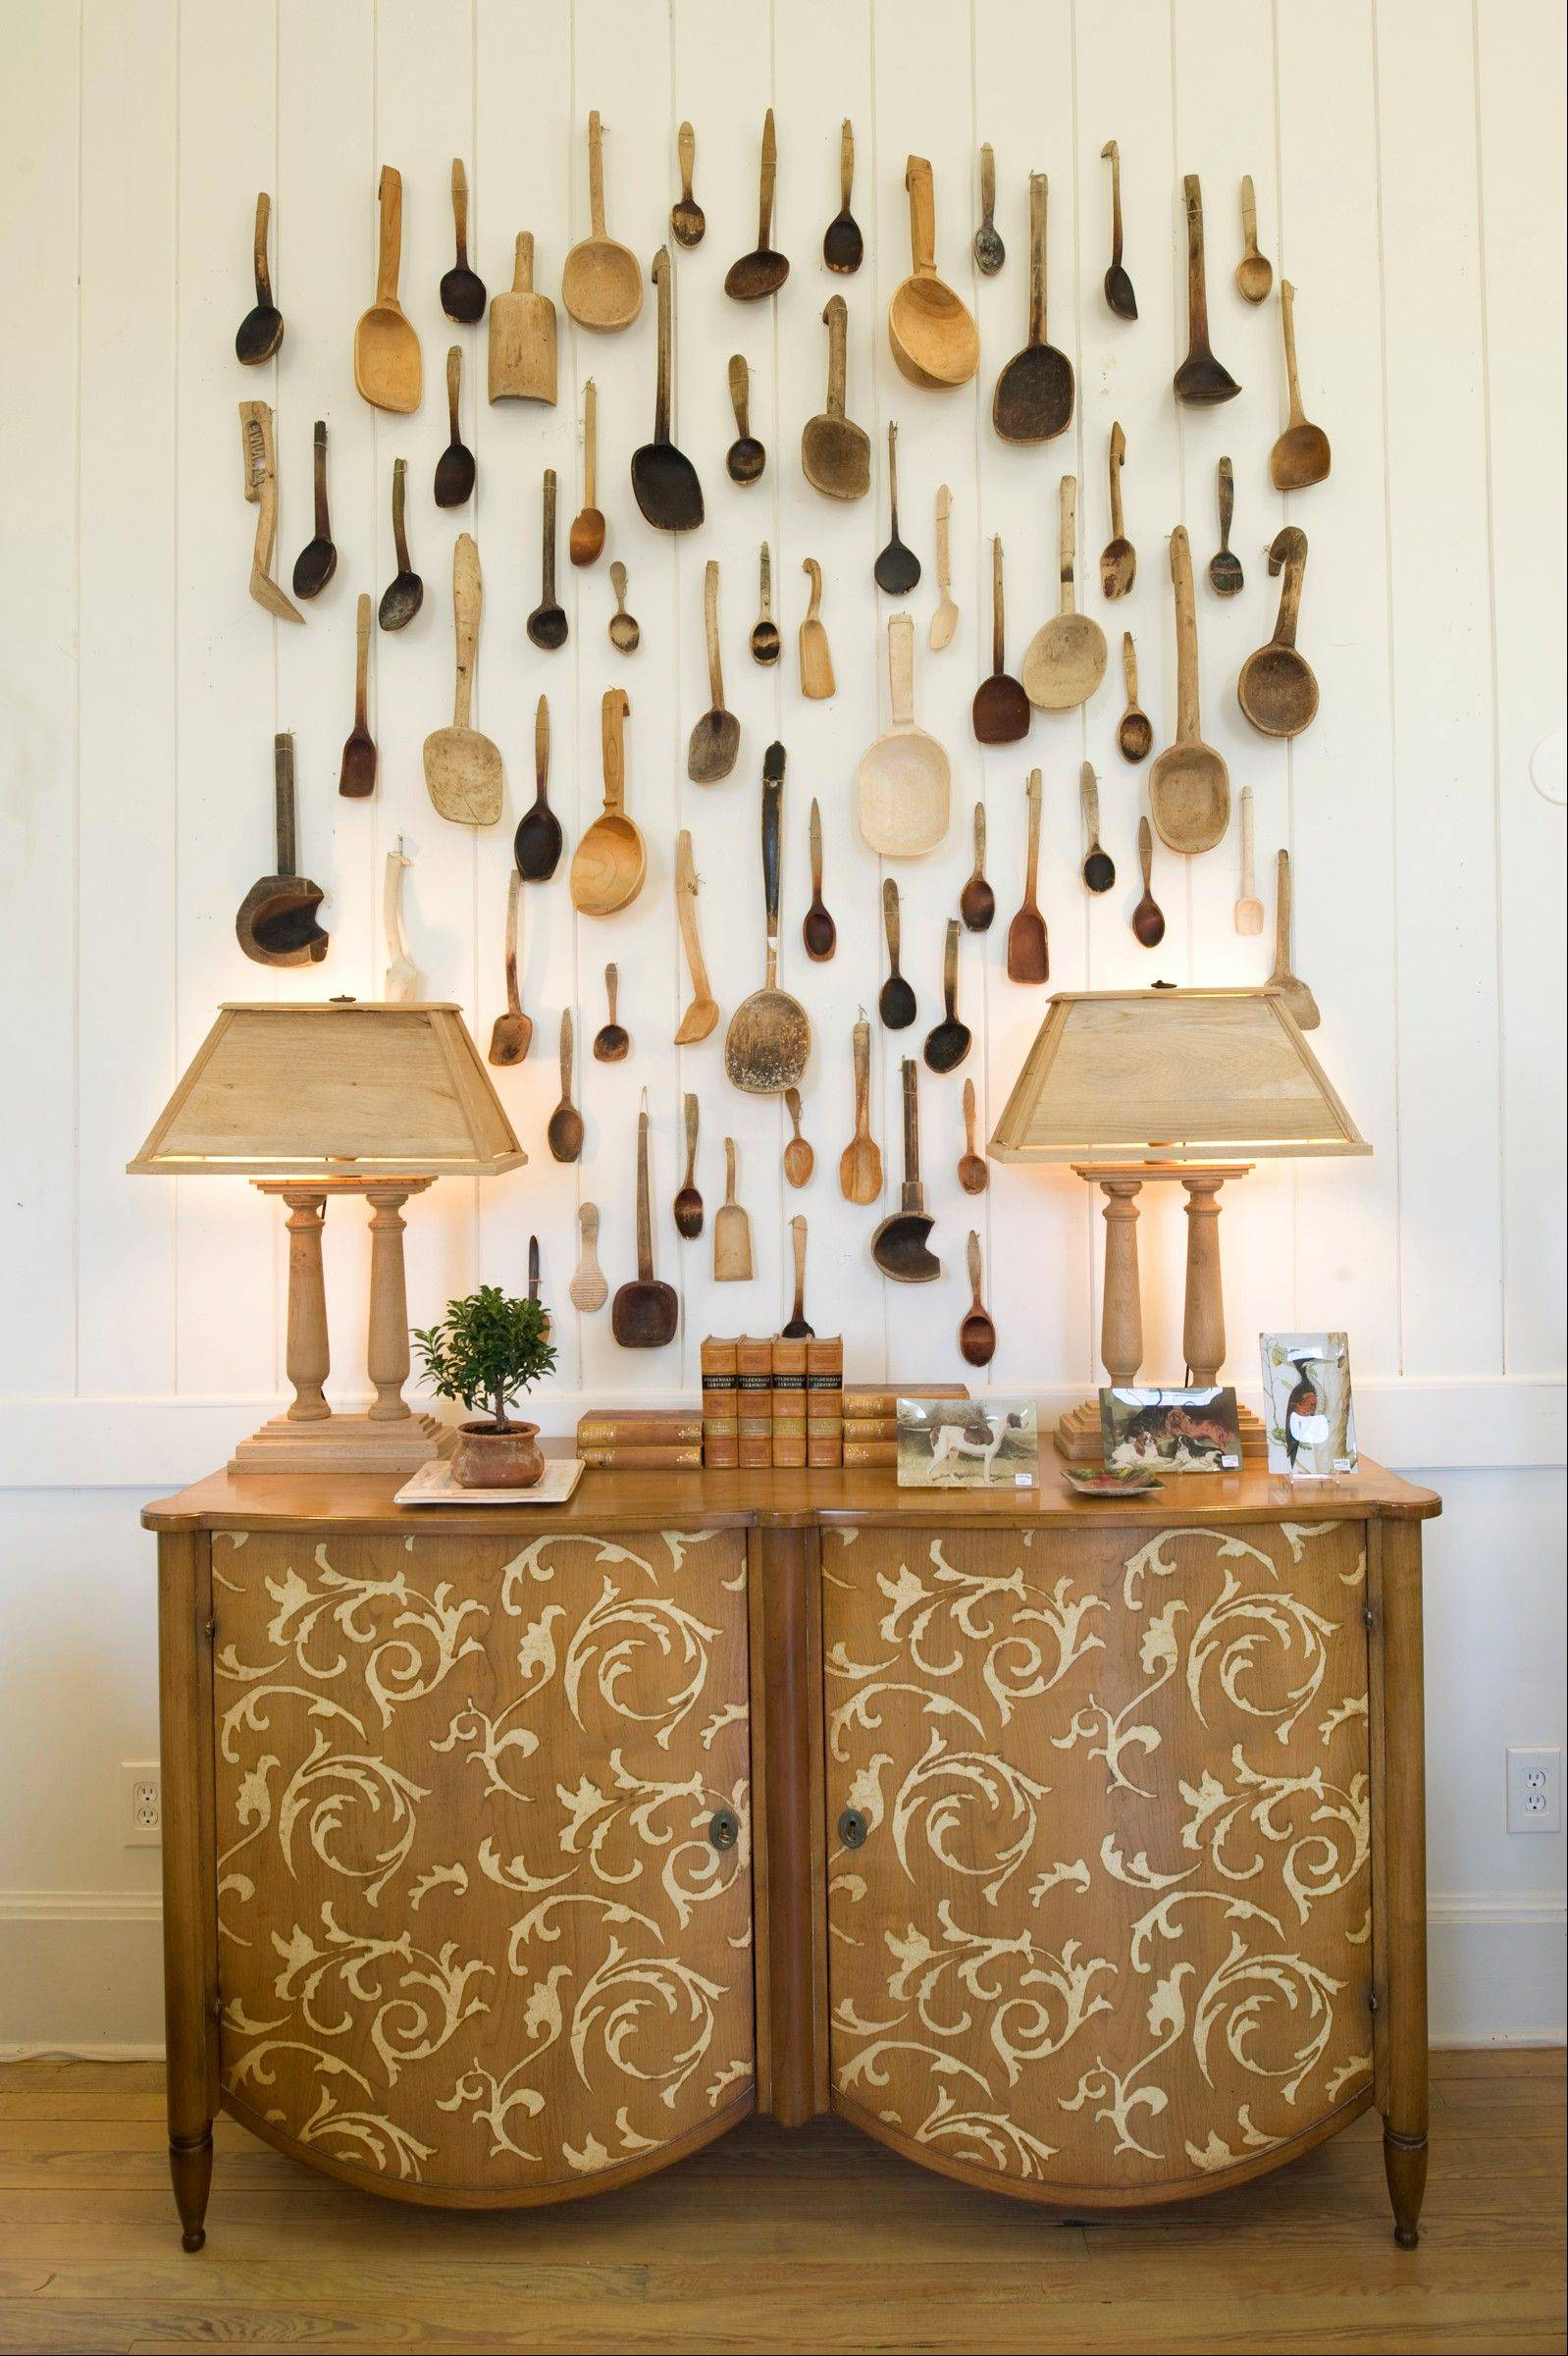 A set of 70 Belgian wooden spoons hangs above a hand-painted French sideboard at Matthews House and Garden in Upperville, Va.